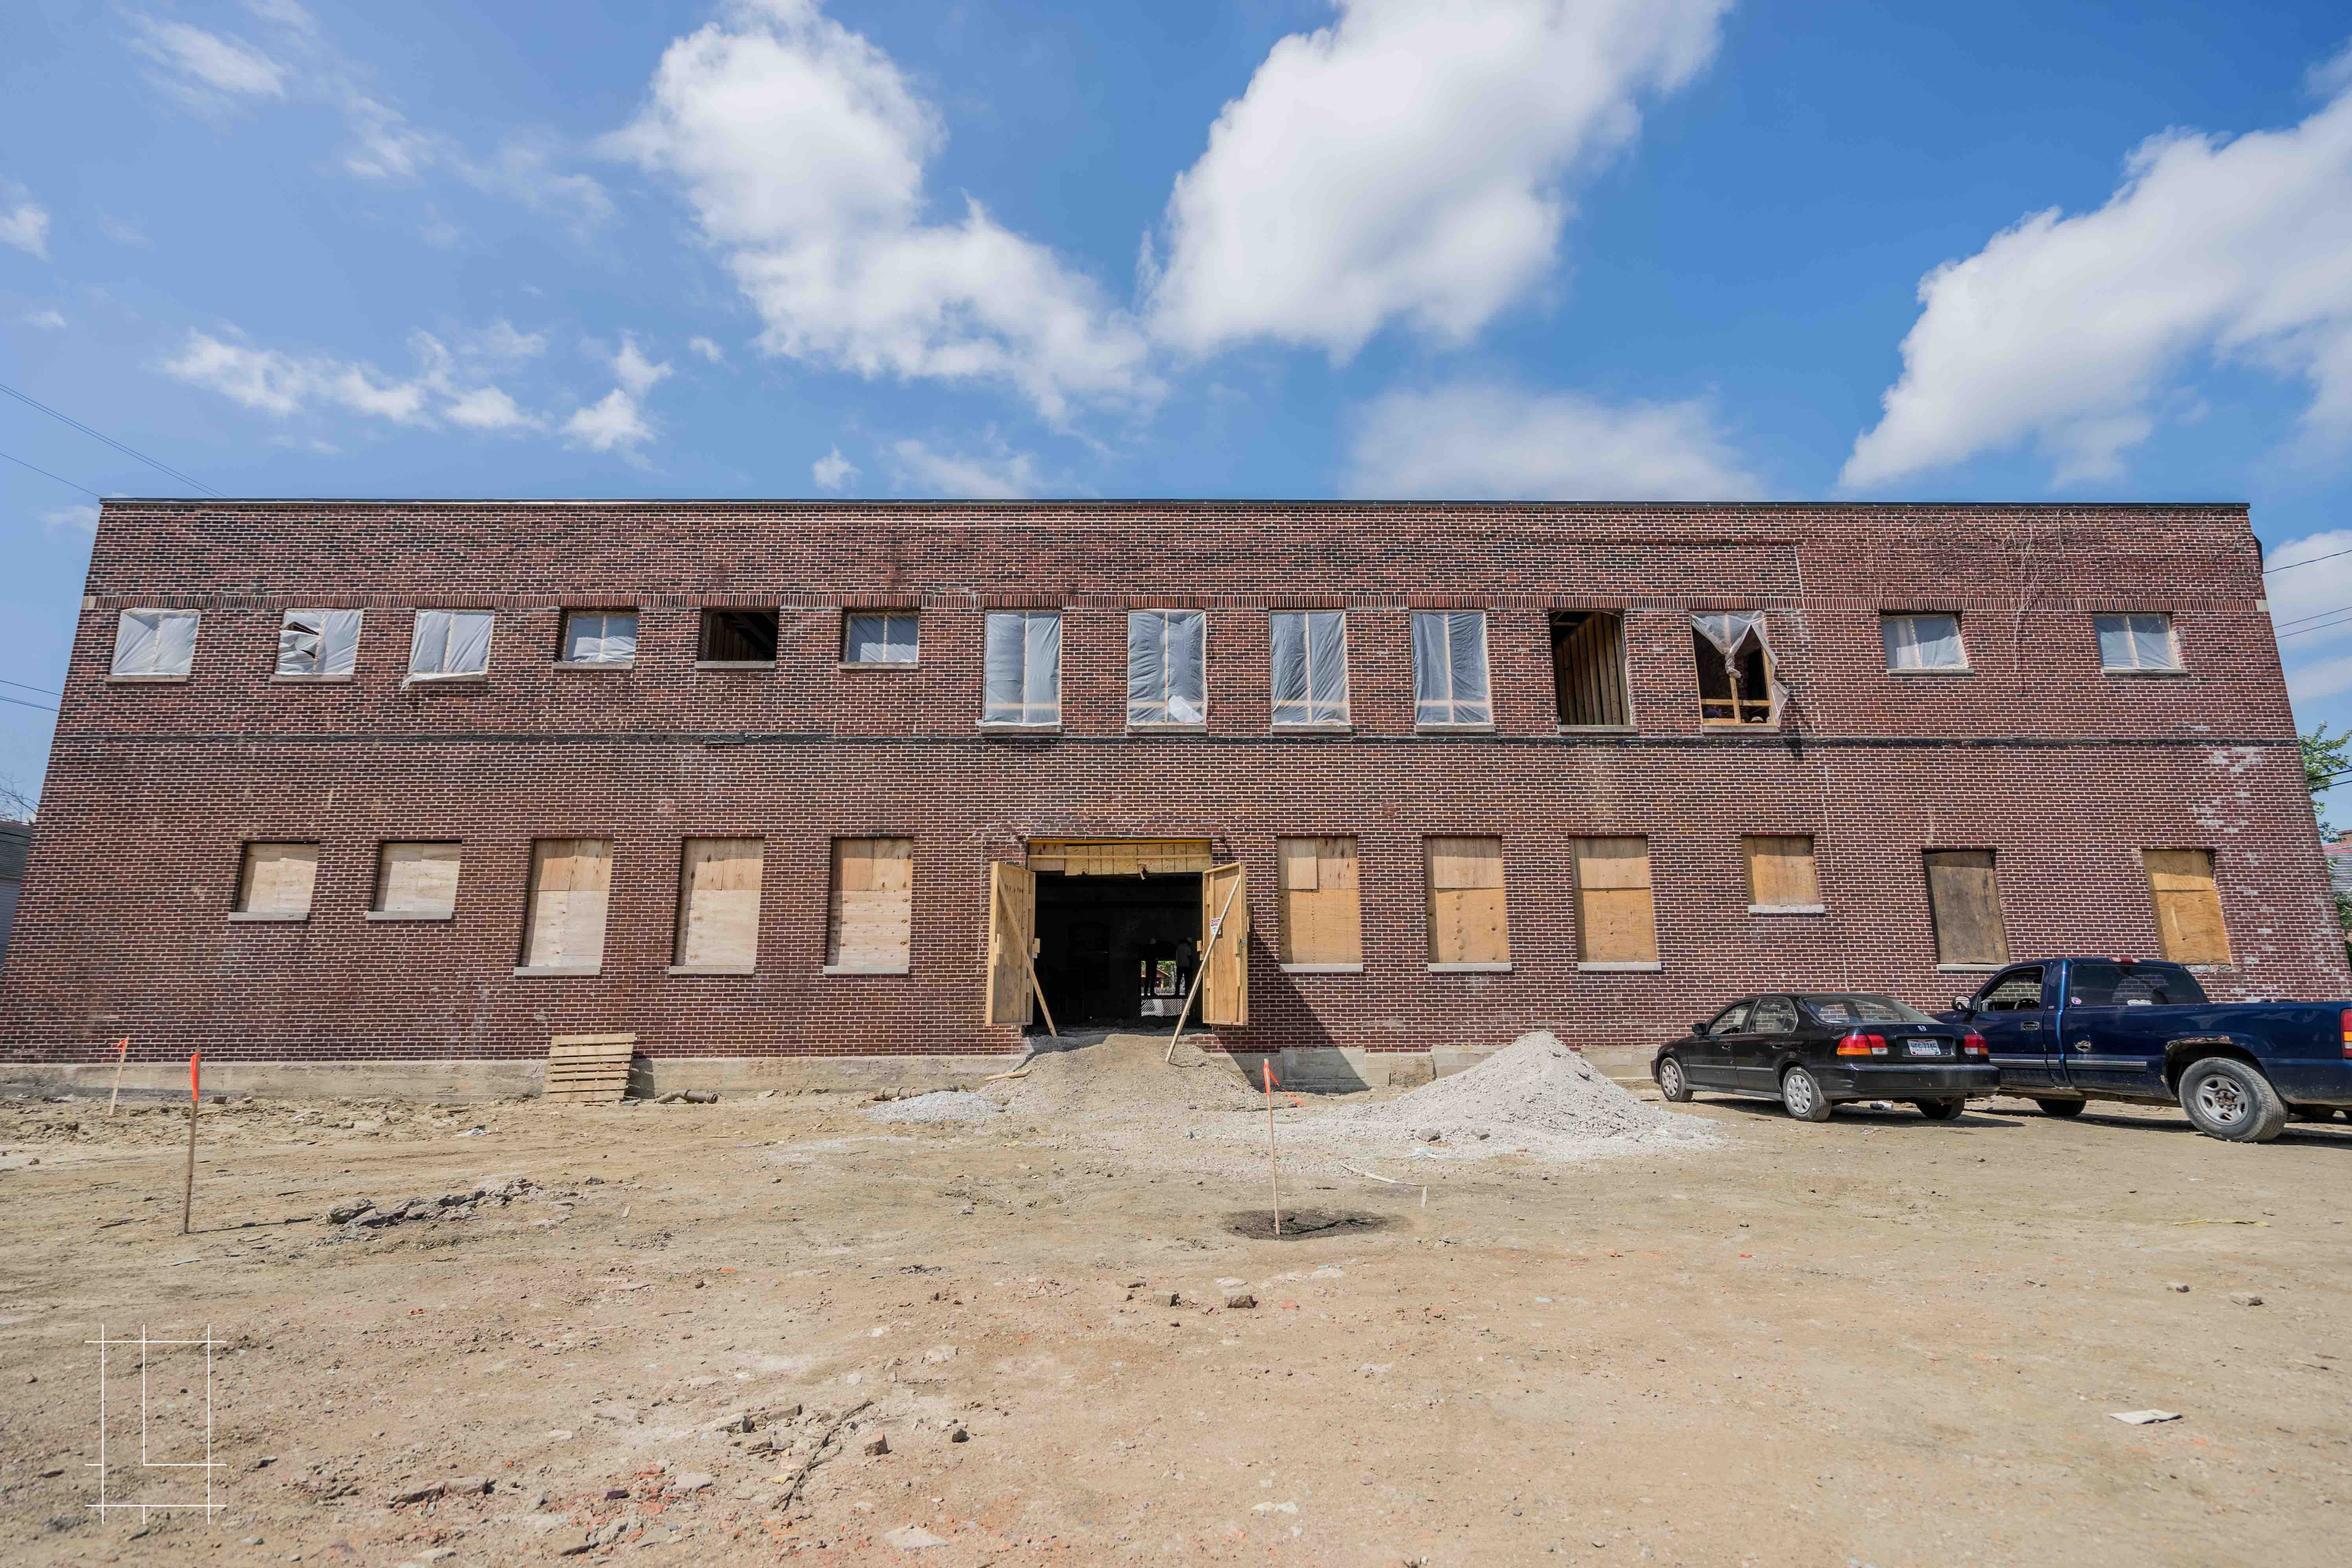 In May 2018, we will complete our revitalization of the historic EJ Thomas warehouse! A sister to the Wonder Bread Lofts, this Italian Village industrial site is another that we've converted into a collection of unique loft spaces and only our second renovation like this ever. Lykens Companies continues to spearhead the incredible transformation happening on the 4th Street Corridor. In 2018 alone, Lykens will introduce six projects to the Italian Village, adding to the exciting momentum started by great local businesses like Seventh Son Brewery, Fox in the Snow, The Market Italian Village, and more. The EJ Thomas Co.'s former warehouse sat empty for years before Lykens Companies gave it a full renovation, filling it with 20 1 bedroom, 1 bathroom luxury apartments. Located in Columbus, Ohio, Lykens Companies serves Columbus, Ohio's urban core with an eye toward historical preservation and restoration. We are deeply involved in the Short North, Victorian Village, Italian Village, Olde Towne East, and Weiland Park communities.